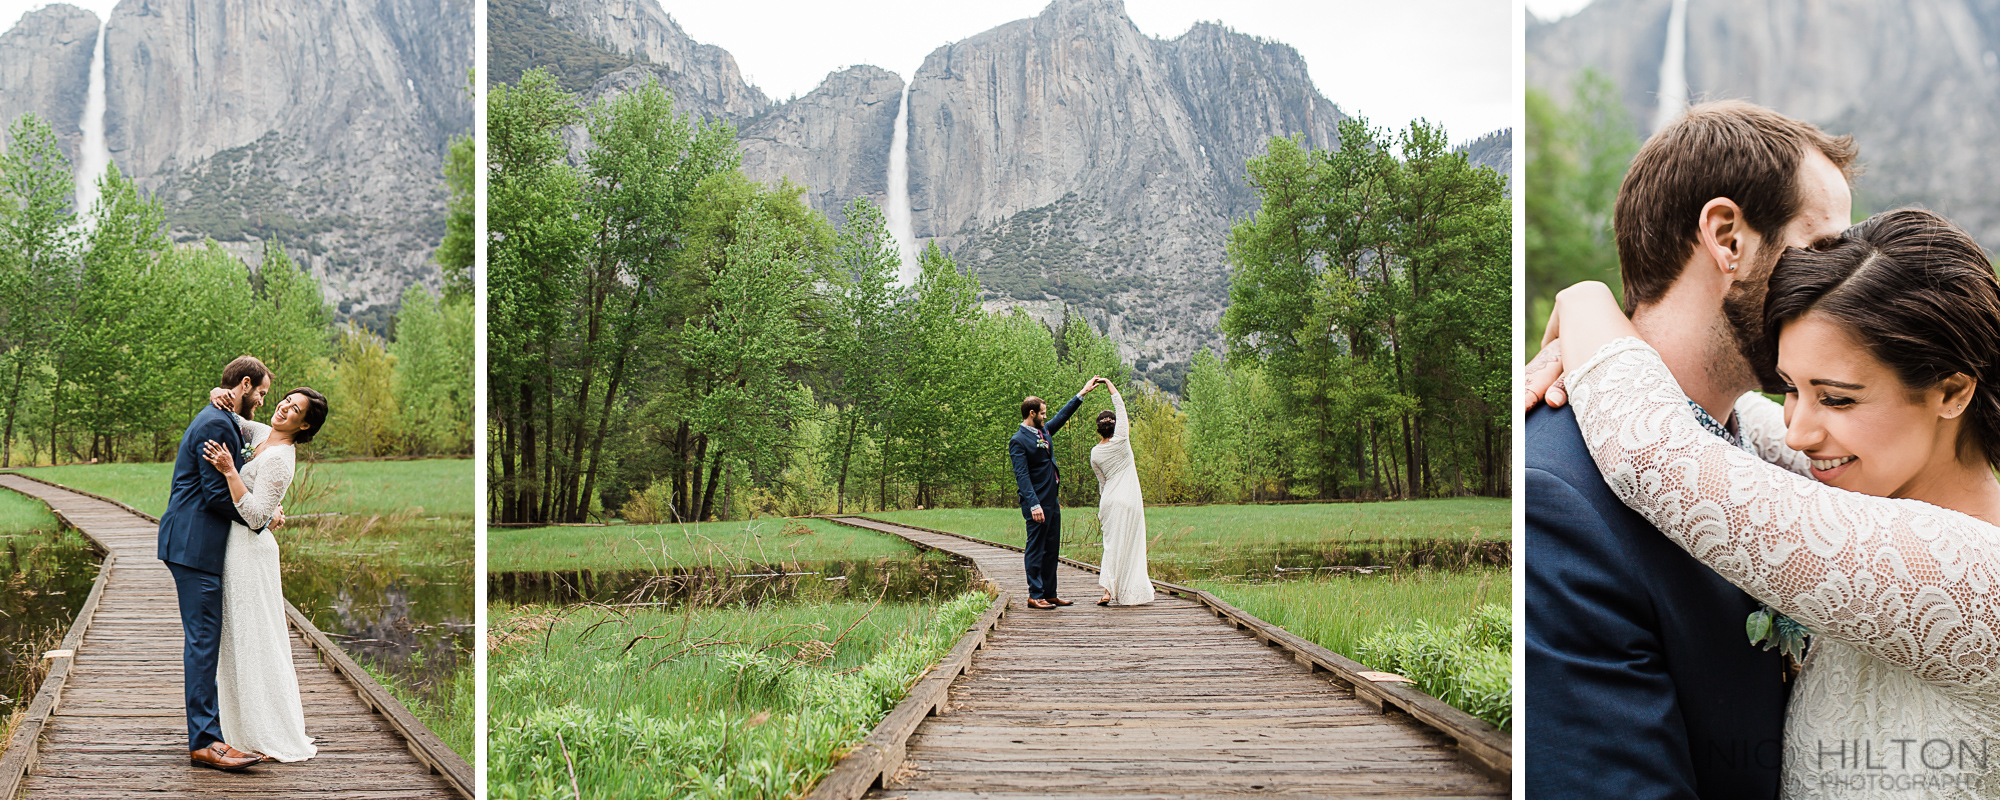 Yosemite Falls Wedding Photography